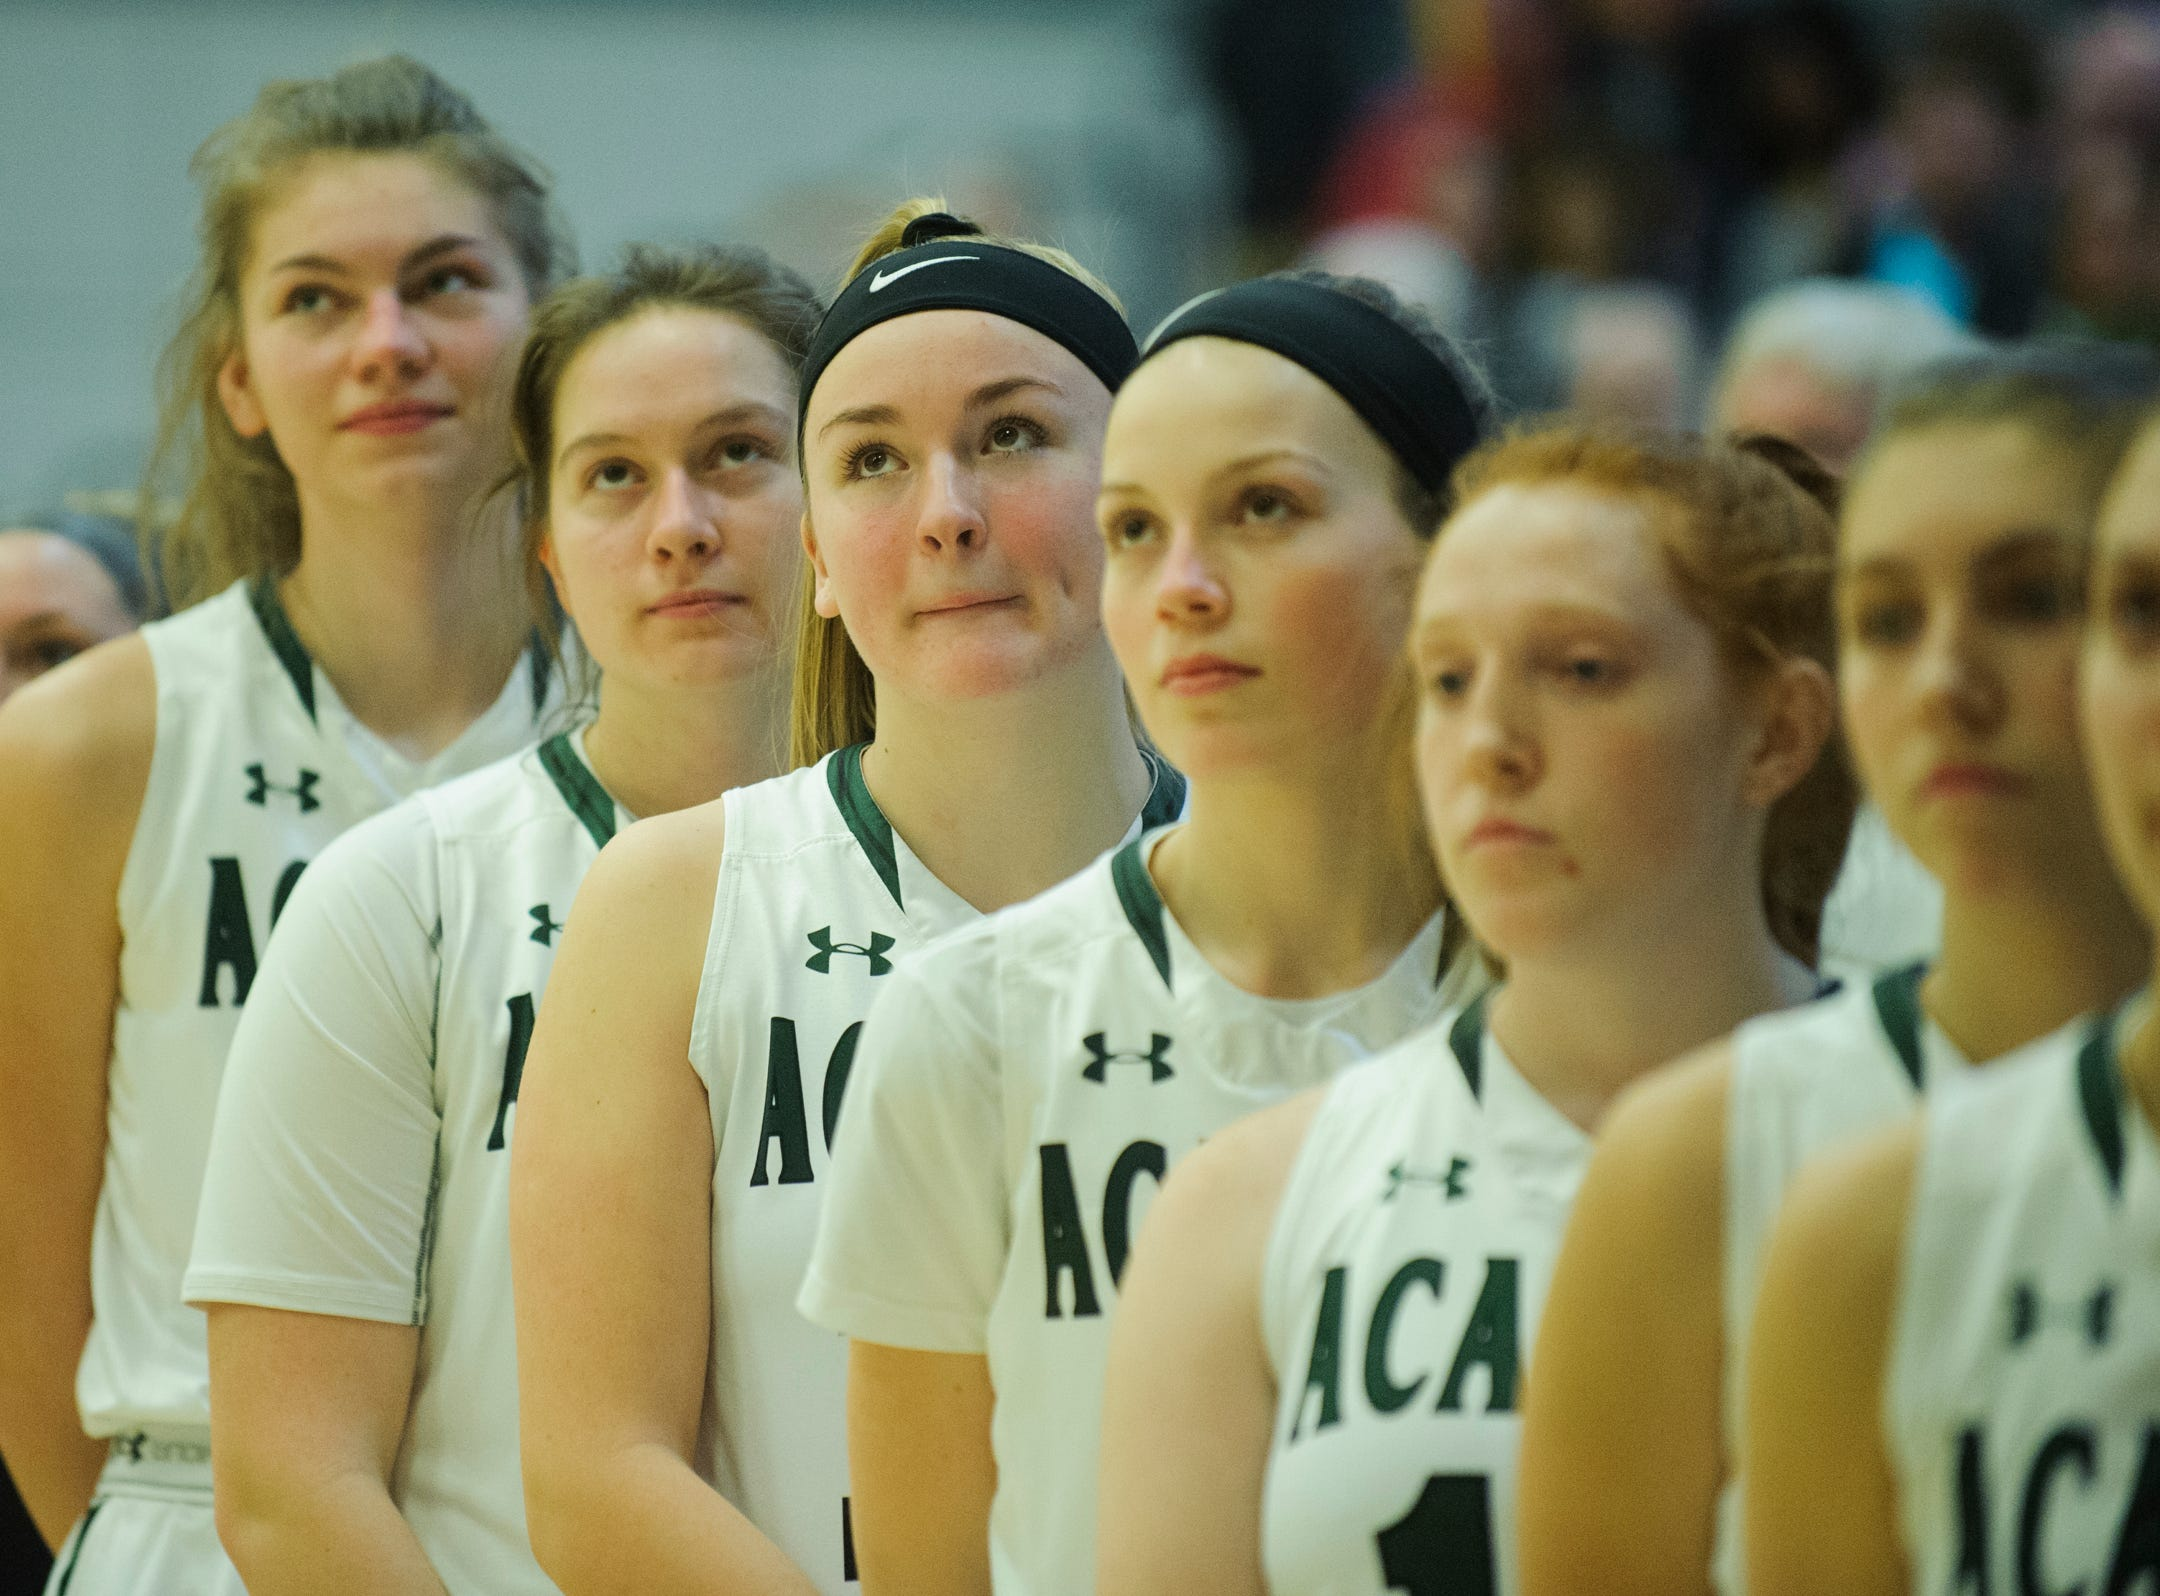 St. Johnsbury listens to the National Anthem during the girls semifinal basketball game between the BFA St. Albans Comets and the St. Johnsbury Hilltoppers at Patrick Gym on Wednesday night March 6, 2019 in Burlington, Vermont.